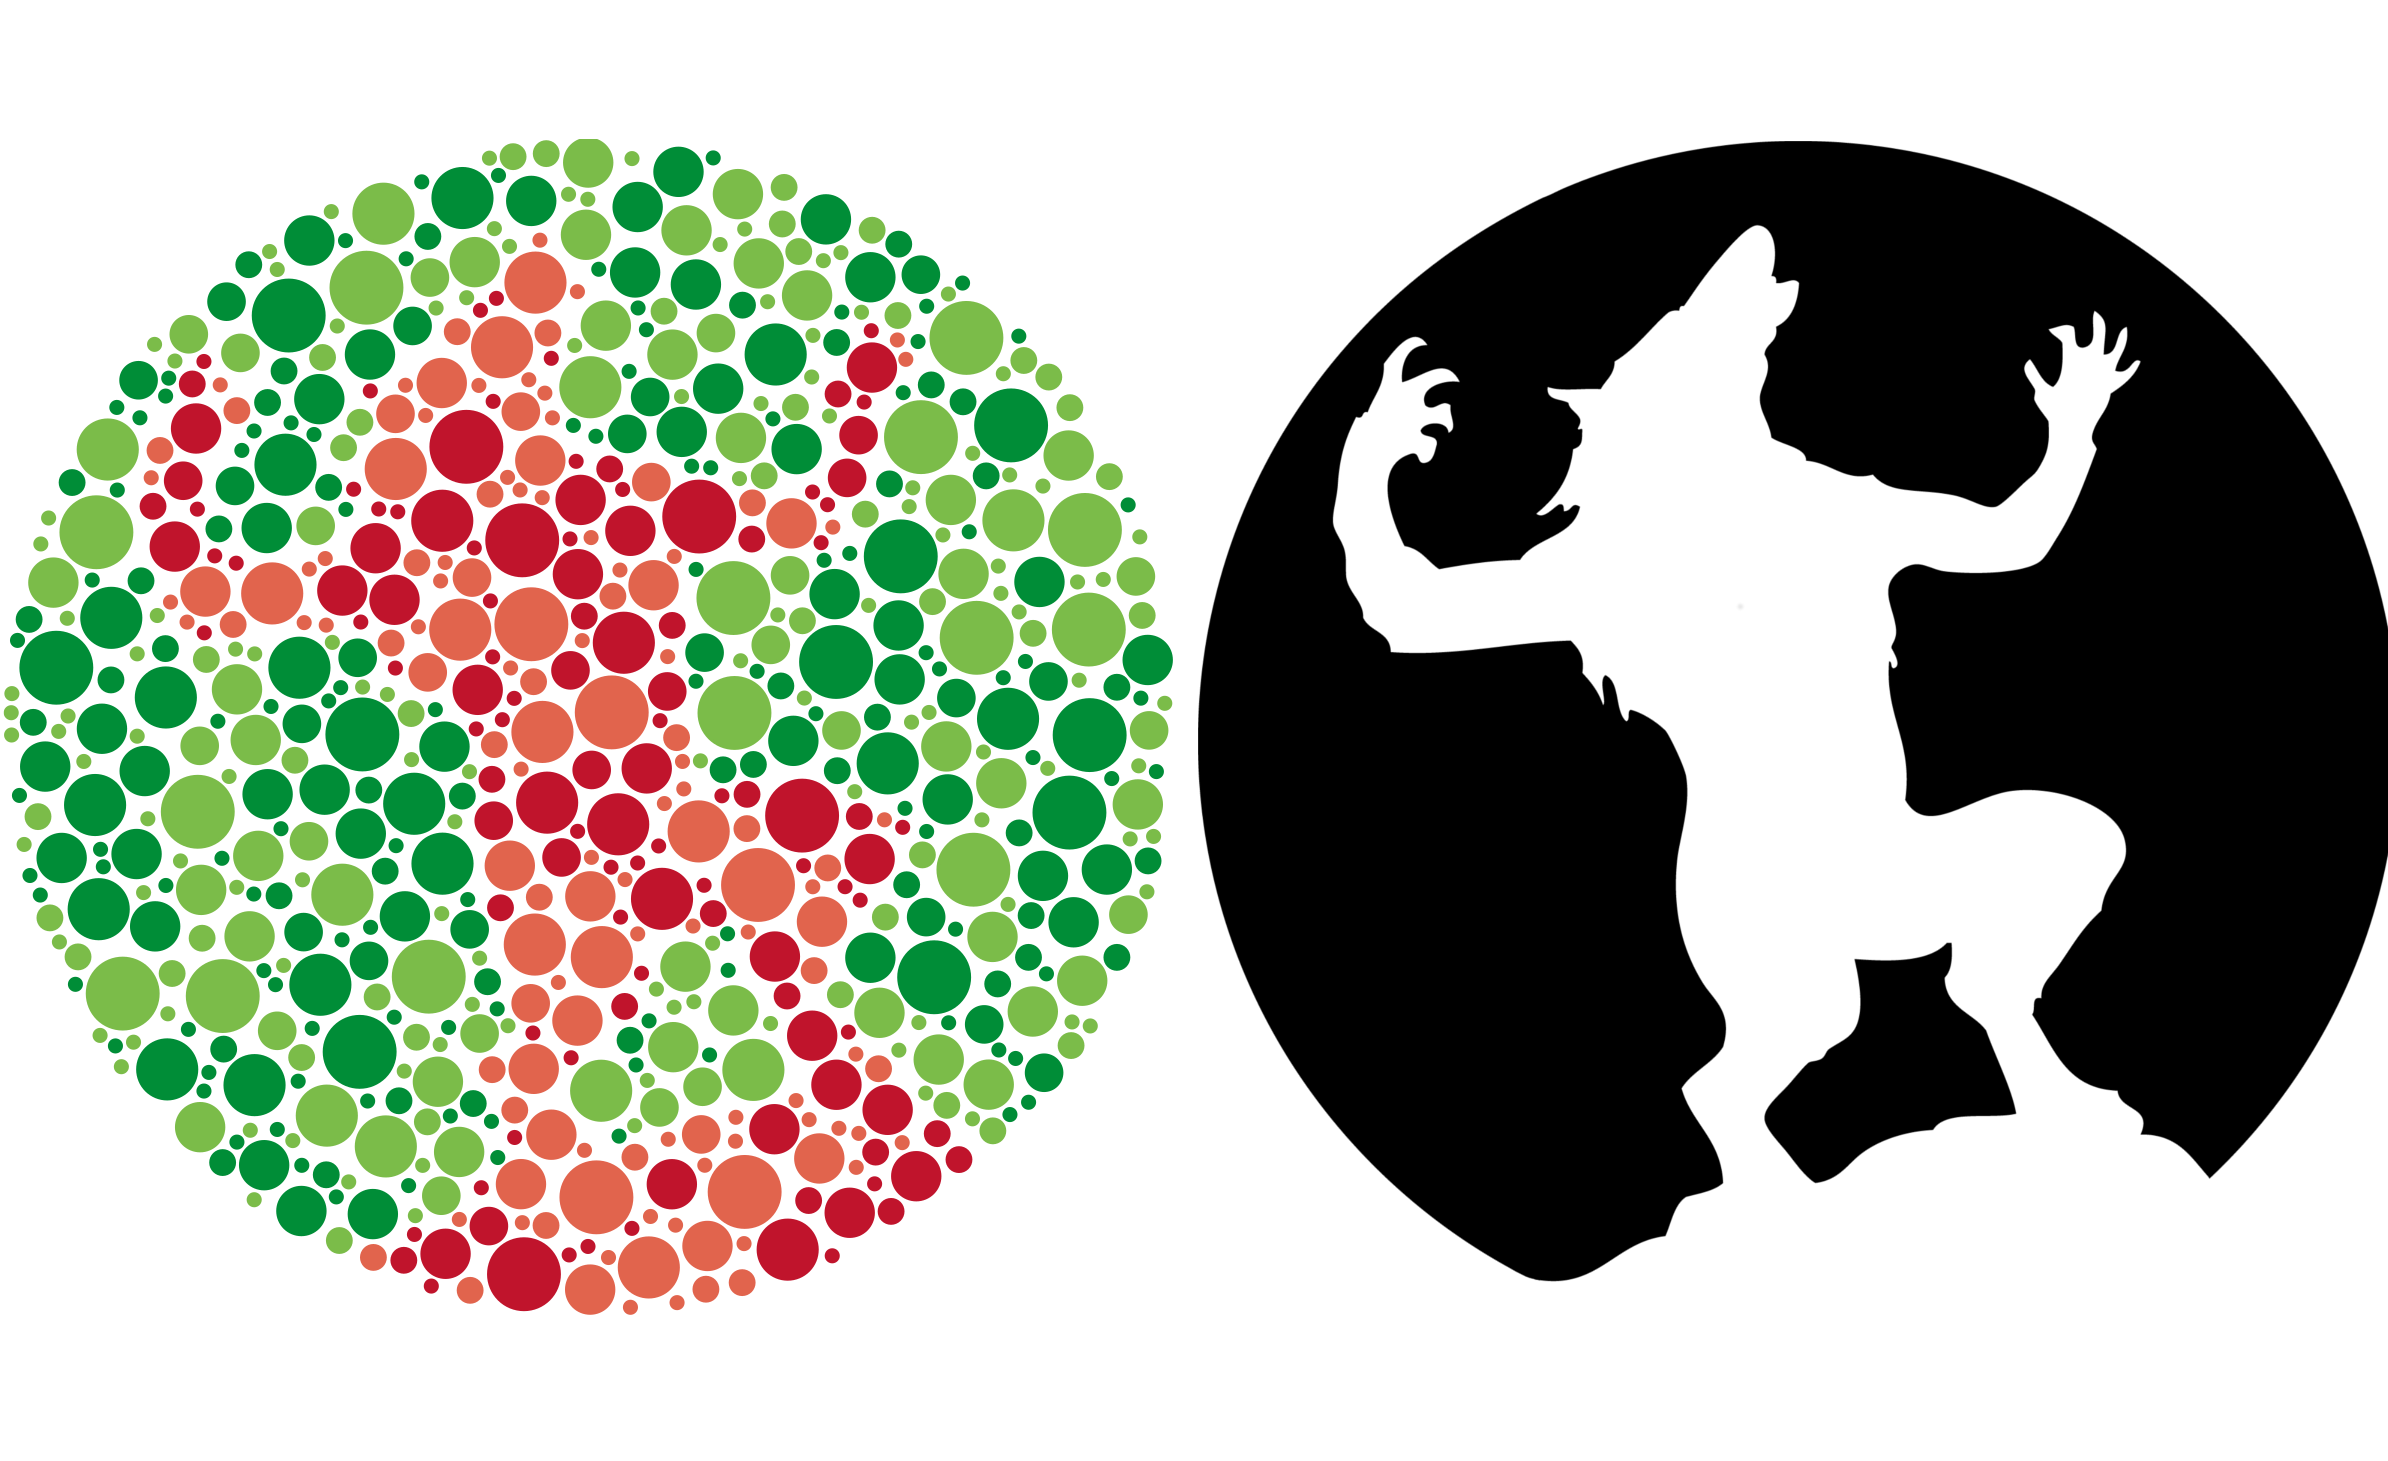 Ishihara plates generated by Monte Carlo algorithms | Ian Faust